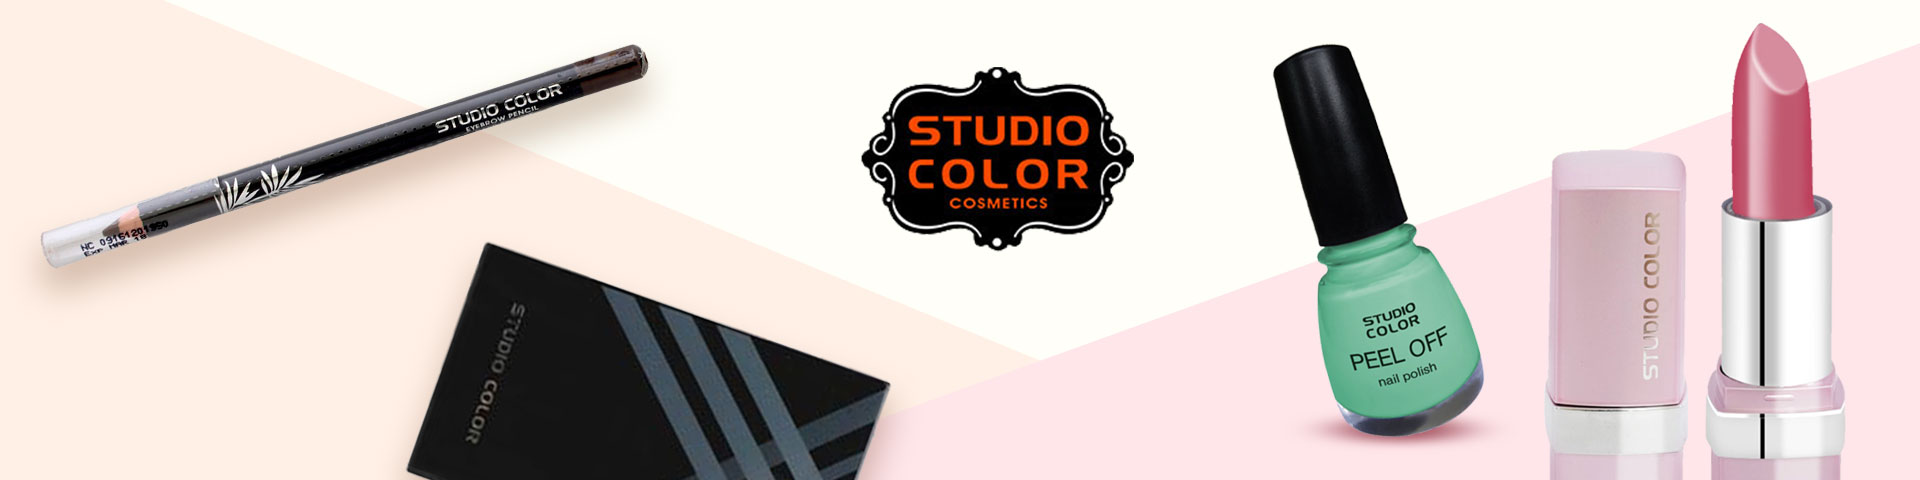 Studio Color